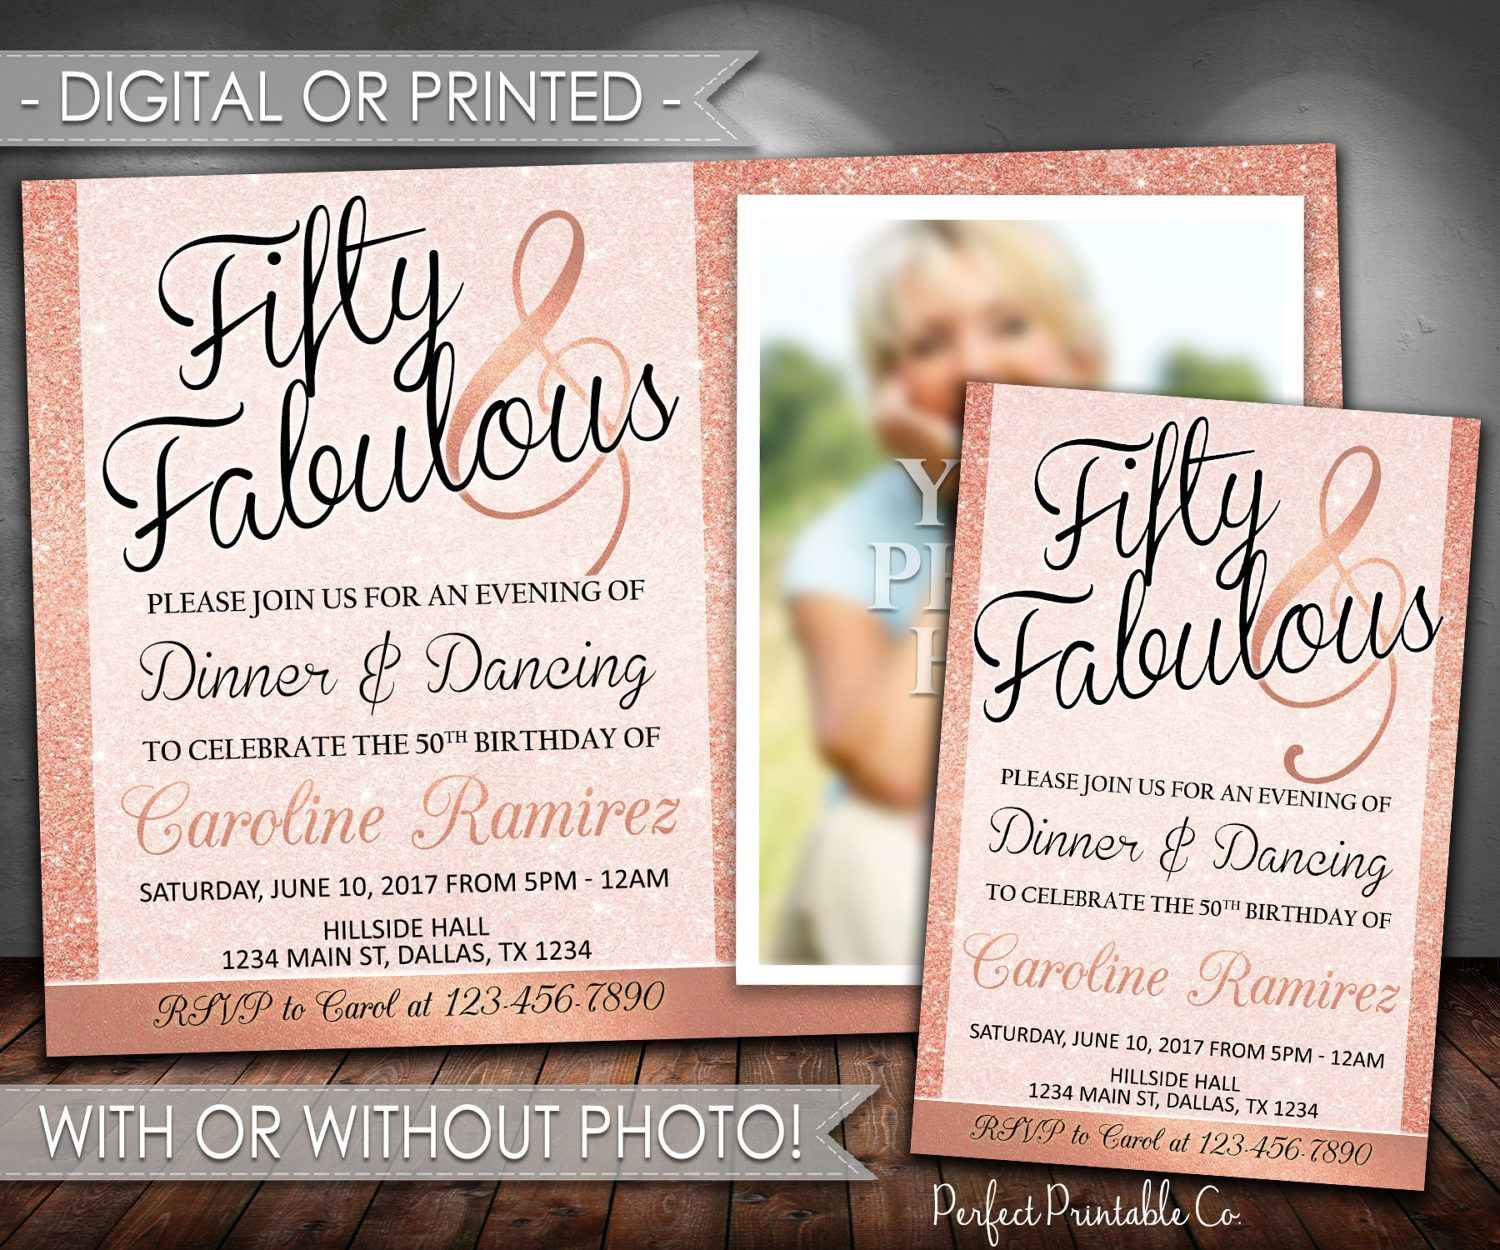 50th Birthday Invitation, Fifty and Fabulous Birthday Invitation, Milestone Invitation, 40th, 60th, Rose Gold, Pink, Digital or Printed #647 by PerfectPrintableCo on Etsy